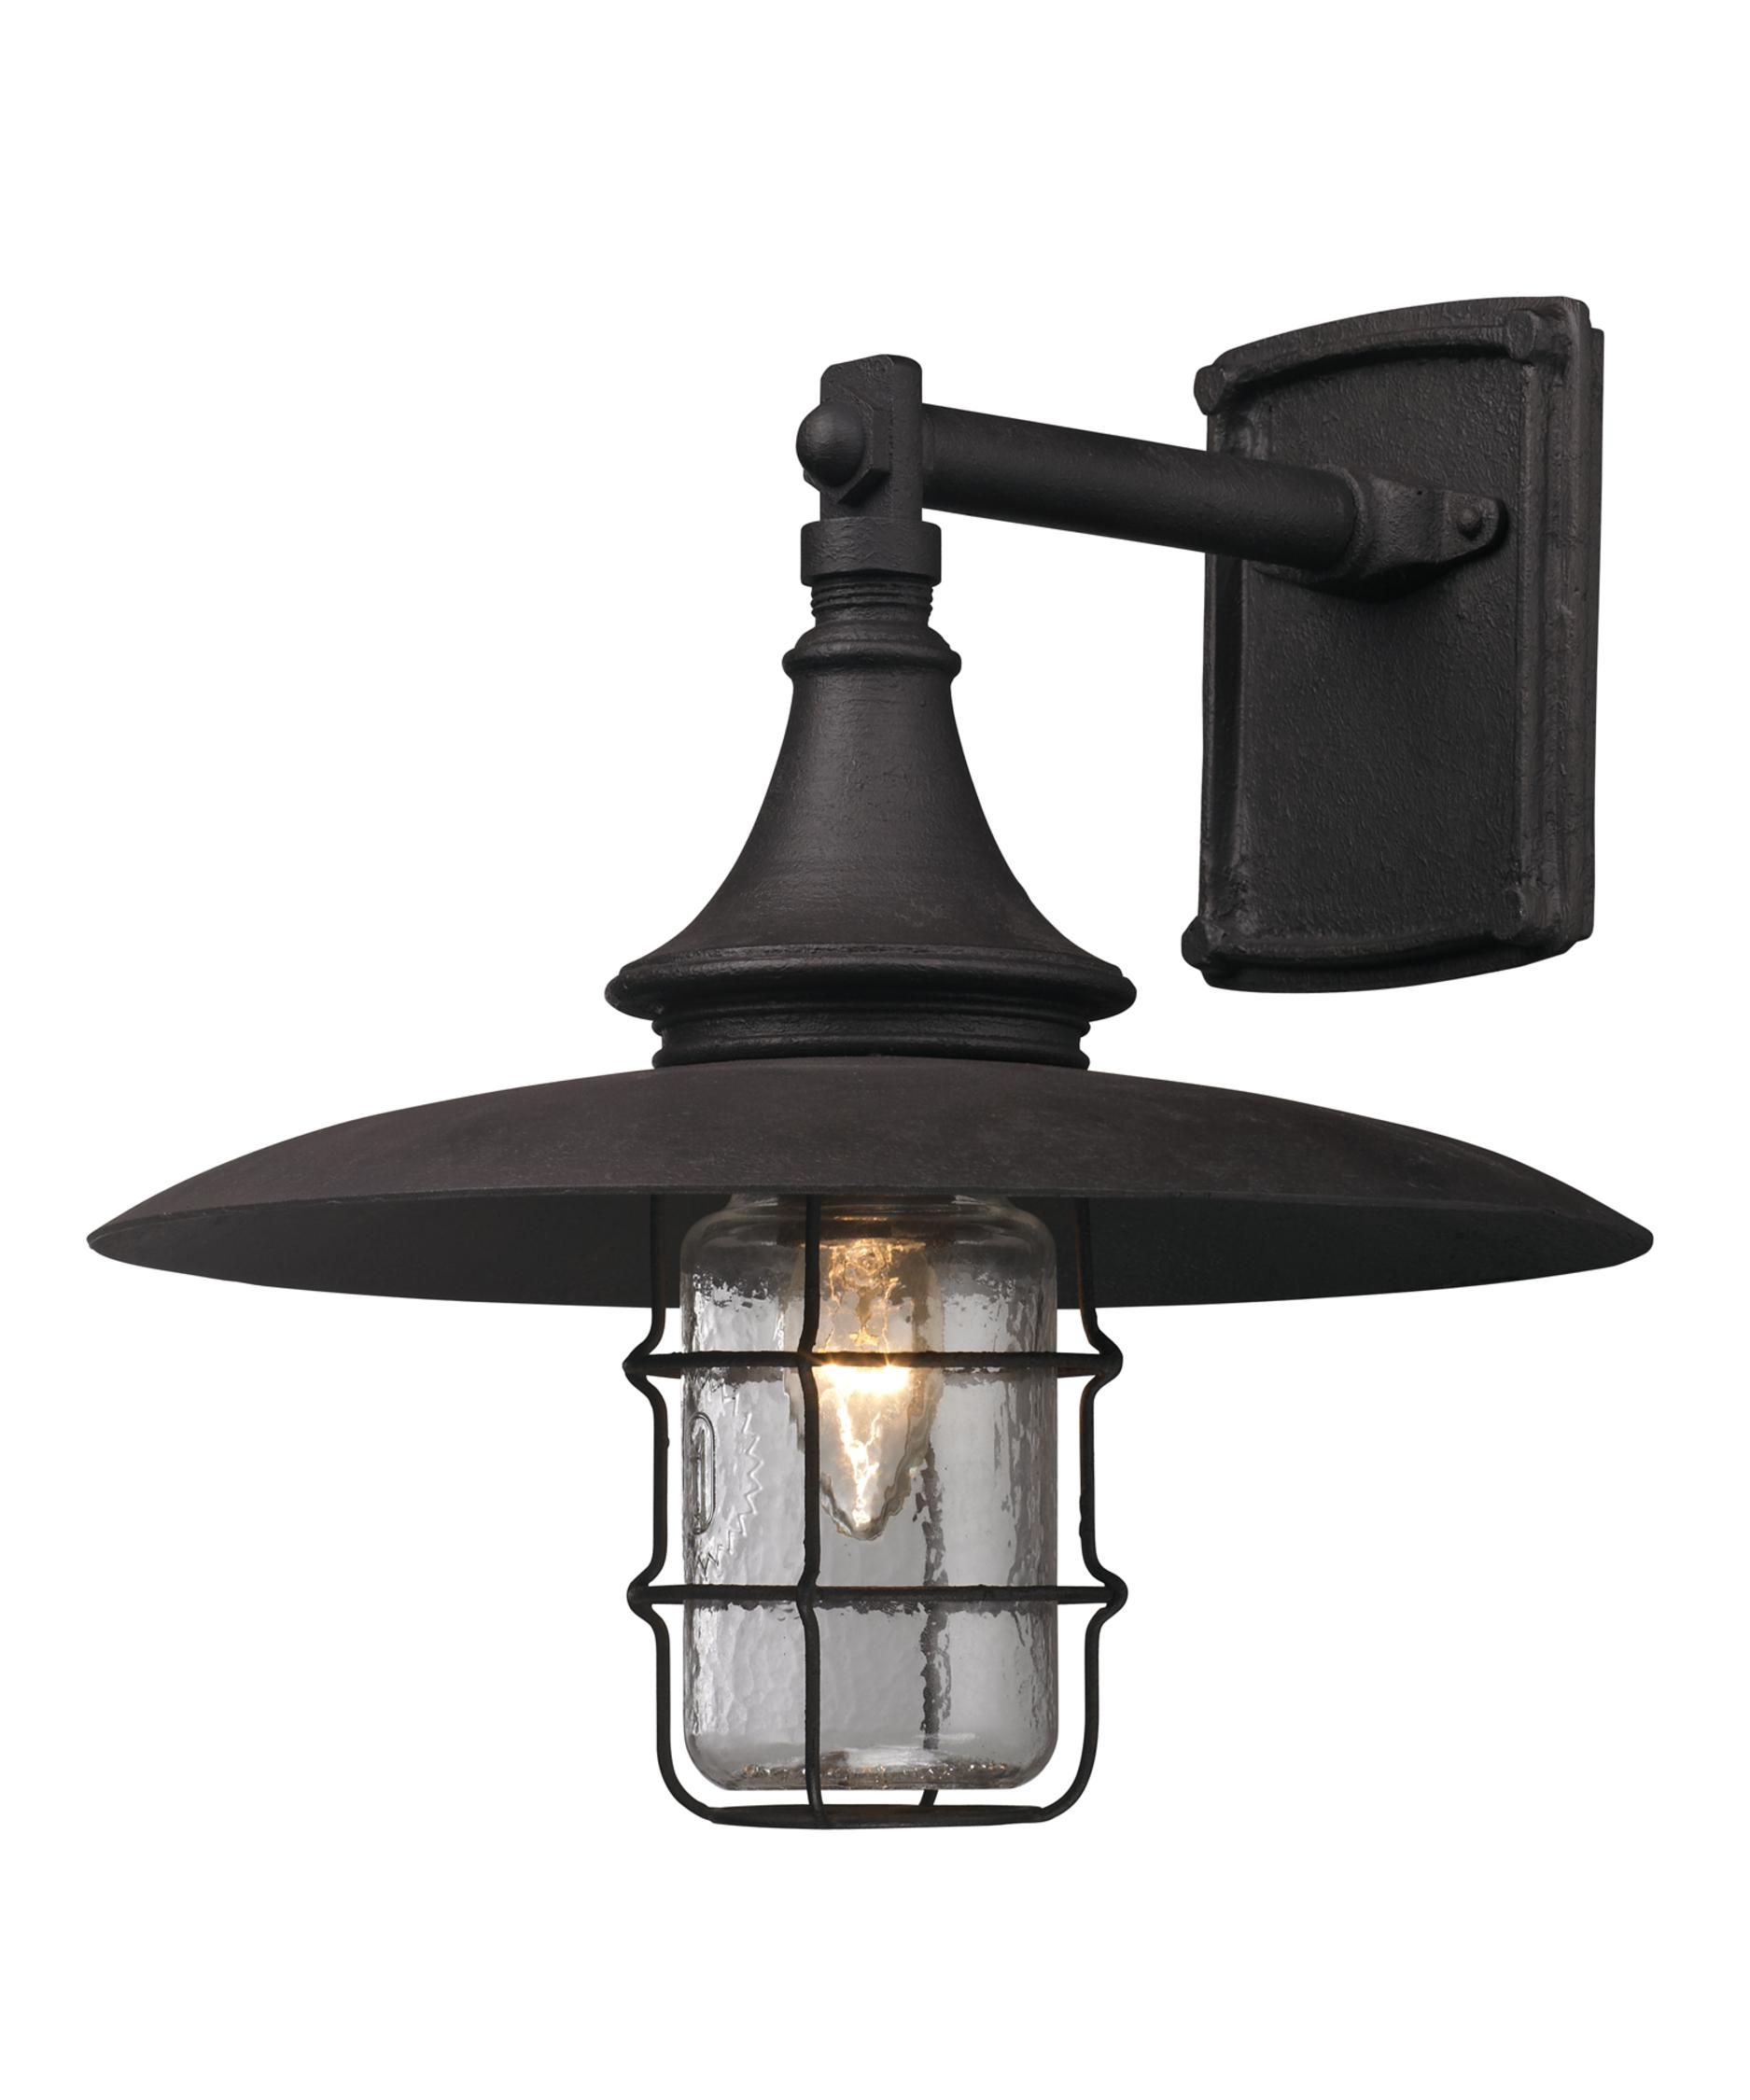 troy lighting allegany 13 inch wide 1 light outdoor wall light troy lighting allegany 13 inch wide 1 light outdoor wall light adfix ironmongery lighting hanging pendant lights